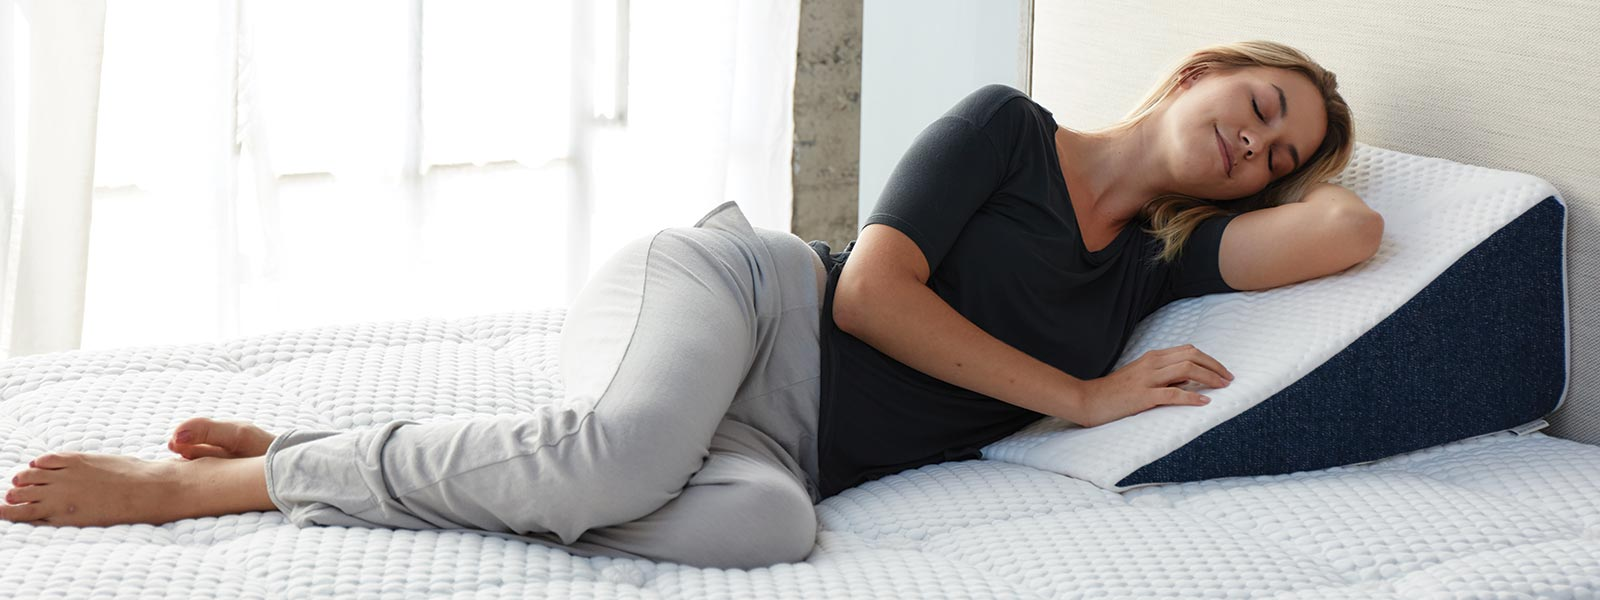 how a wedge pillow can help with sleep apnea acid reflux and improving circulation